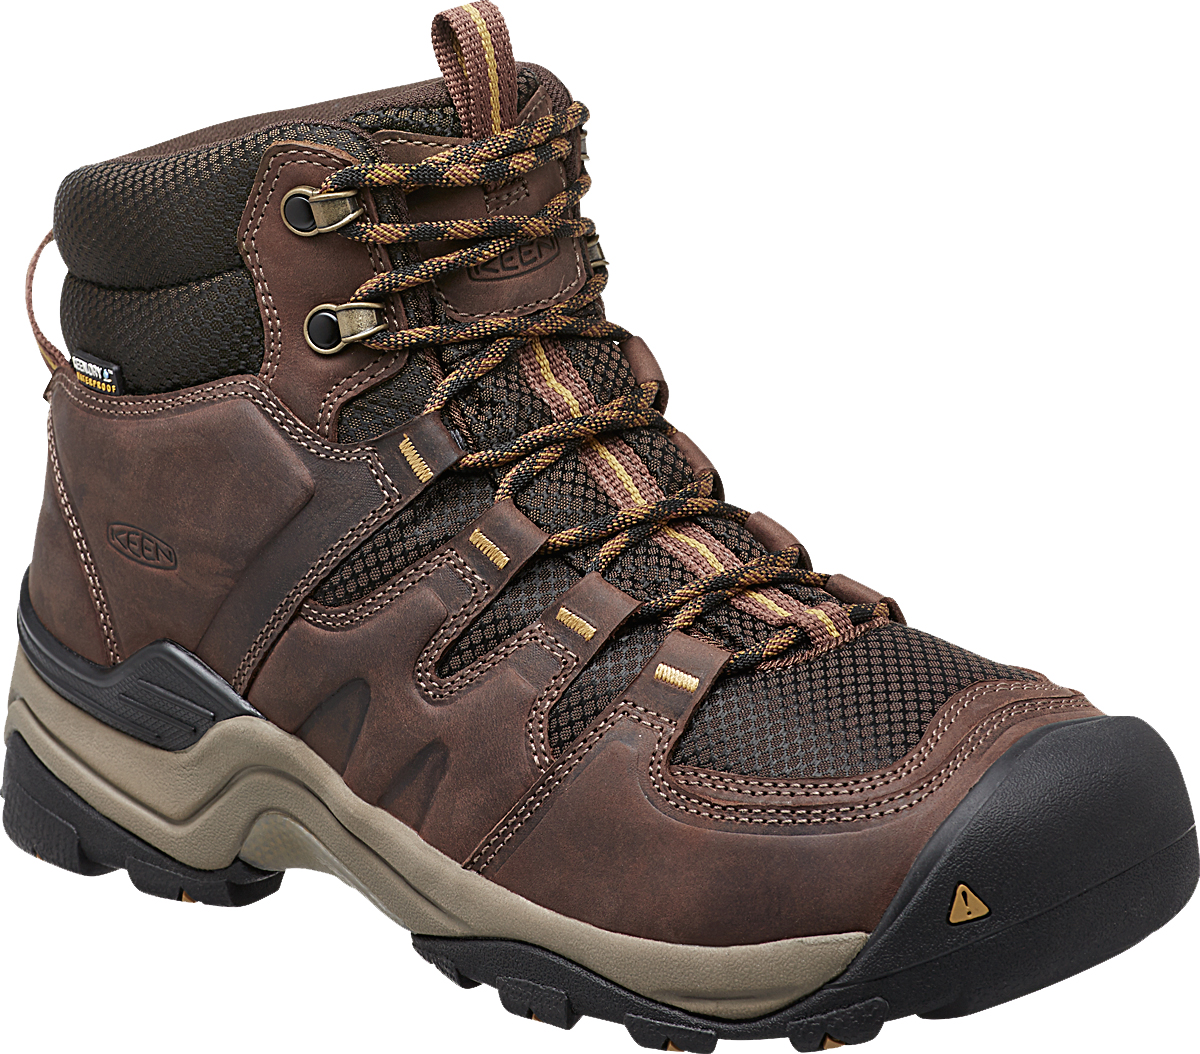 c80414f3f51 Hiking shoes | MEC